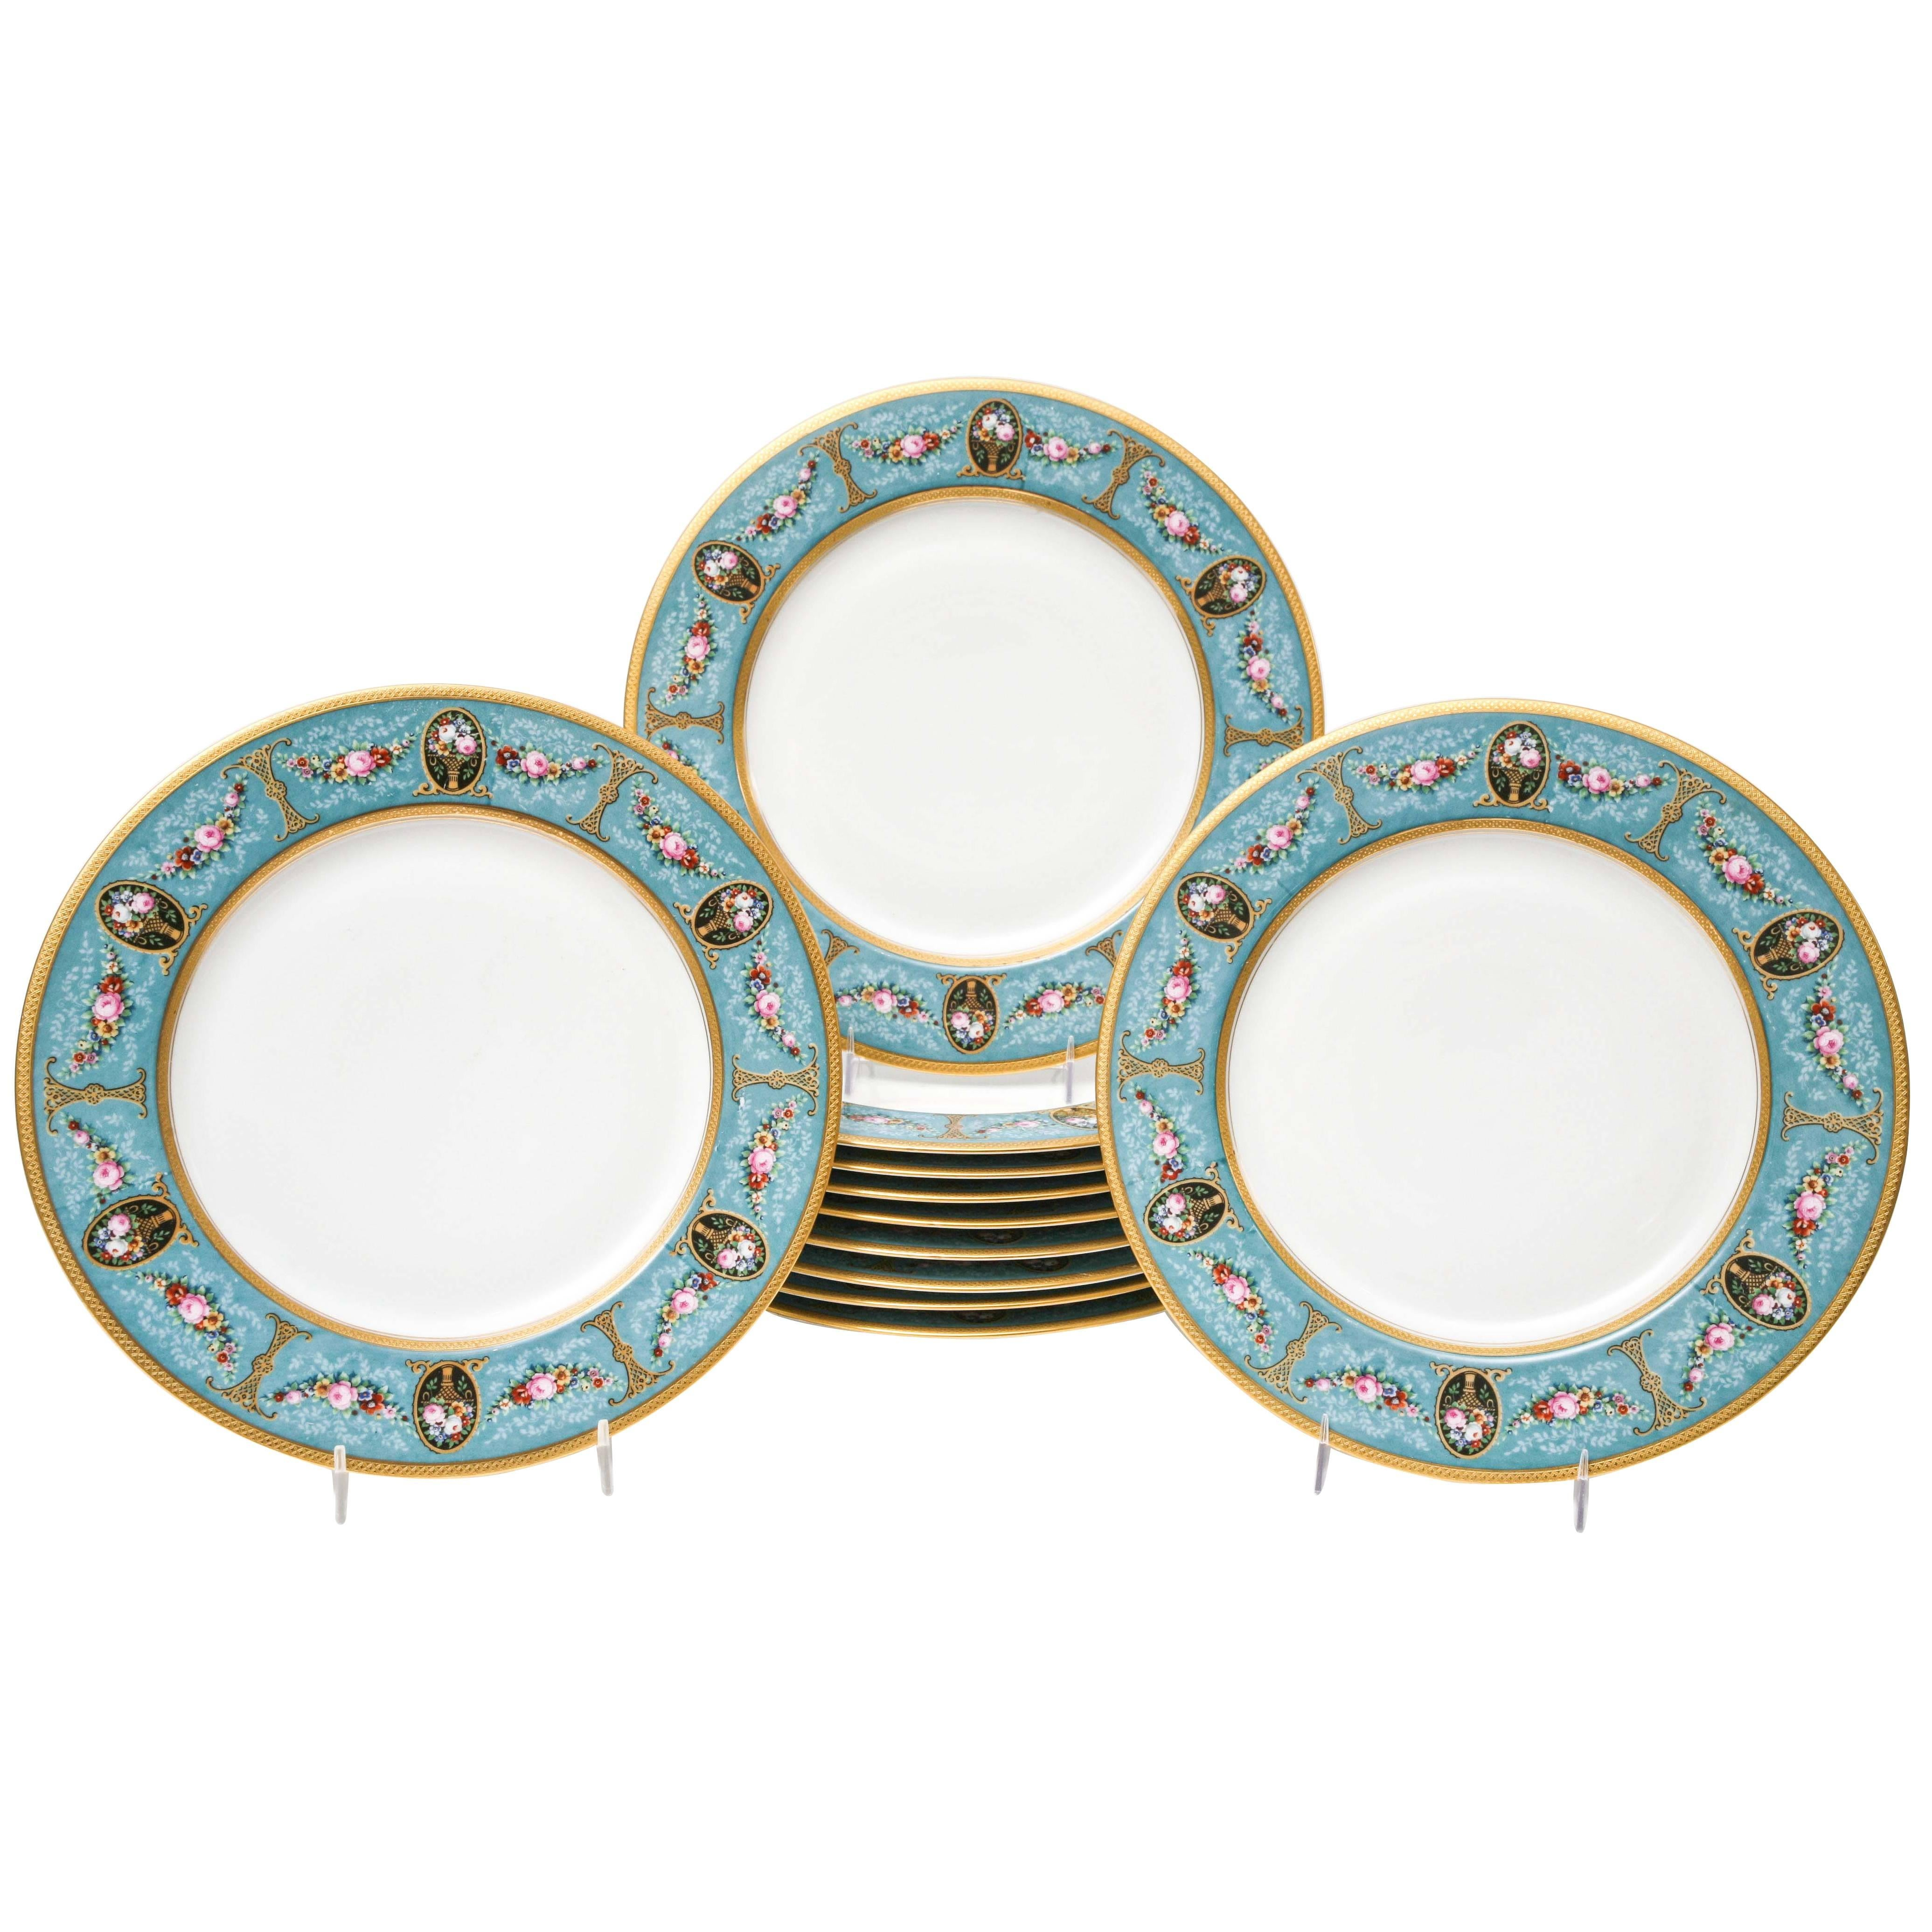 Pretty Turquoise And Rose Pink Dinner Plates Antique Circa 1900 For At 1stdibs